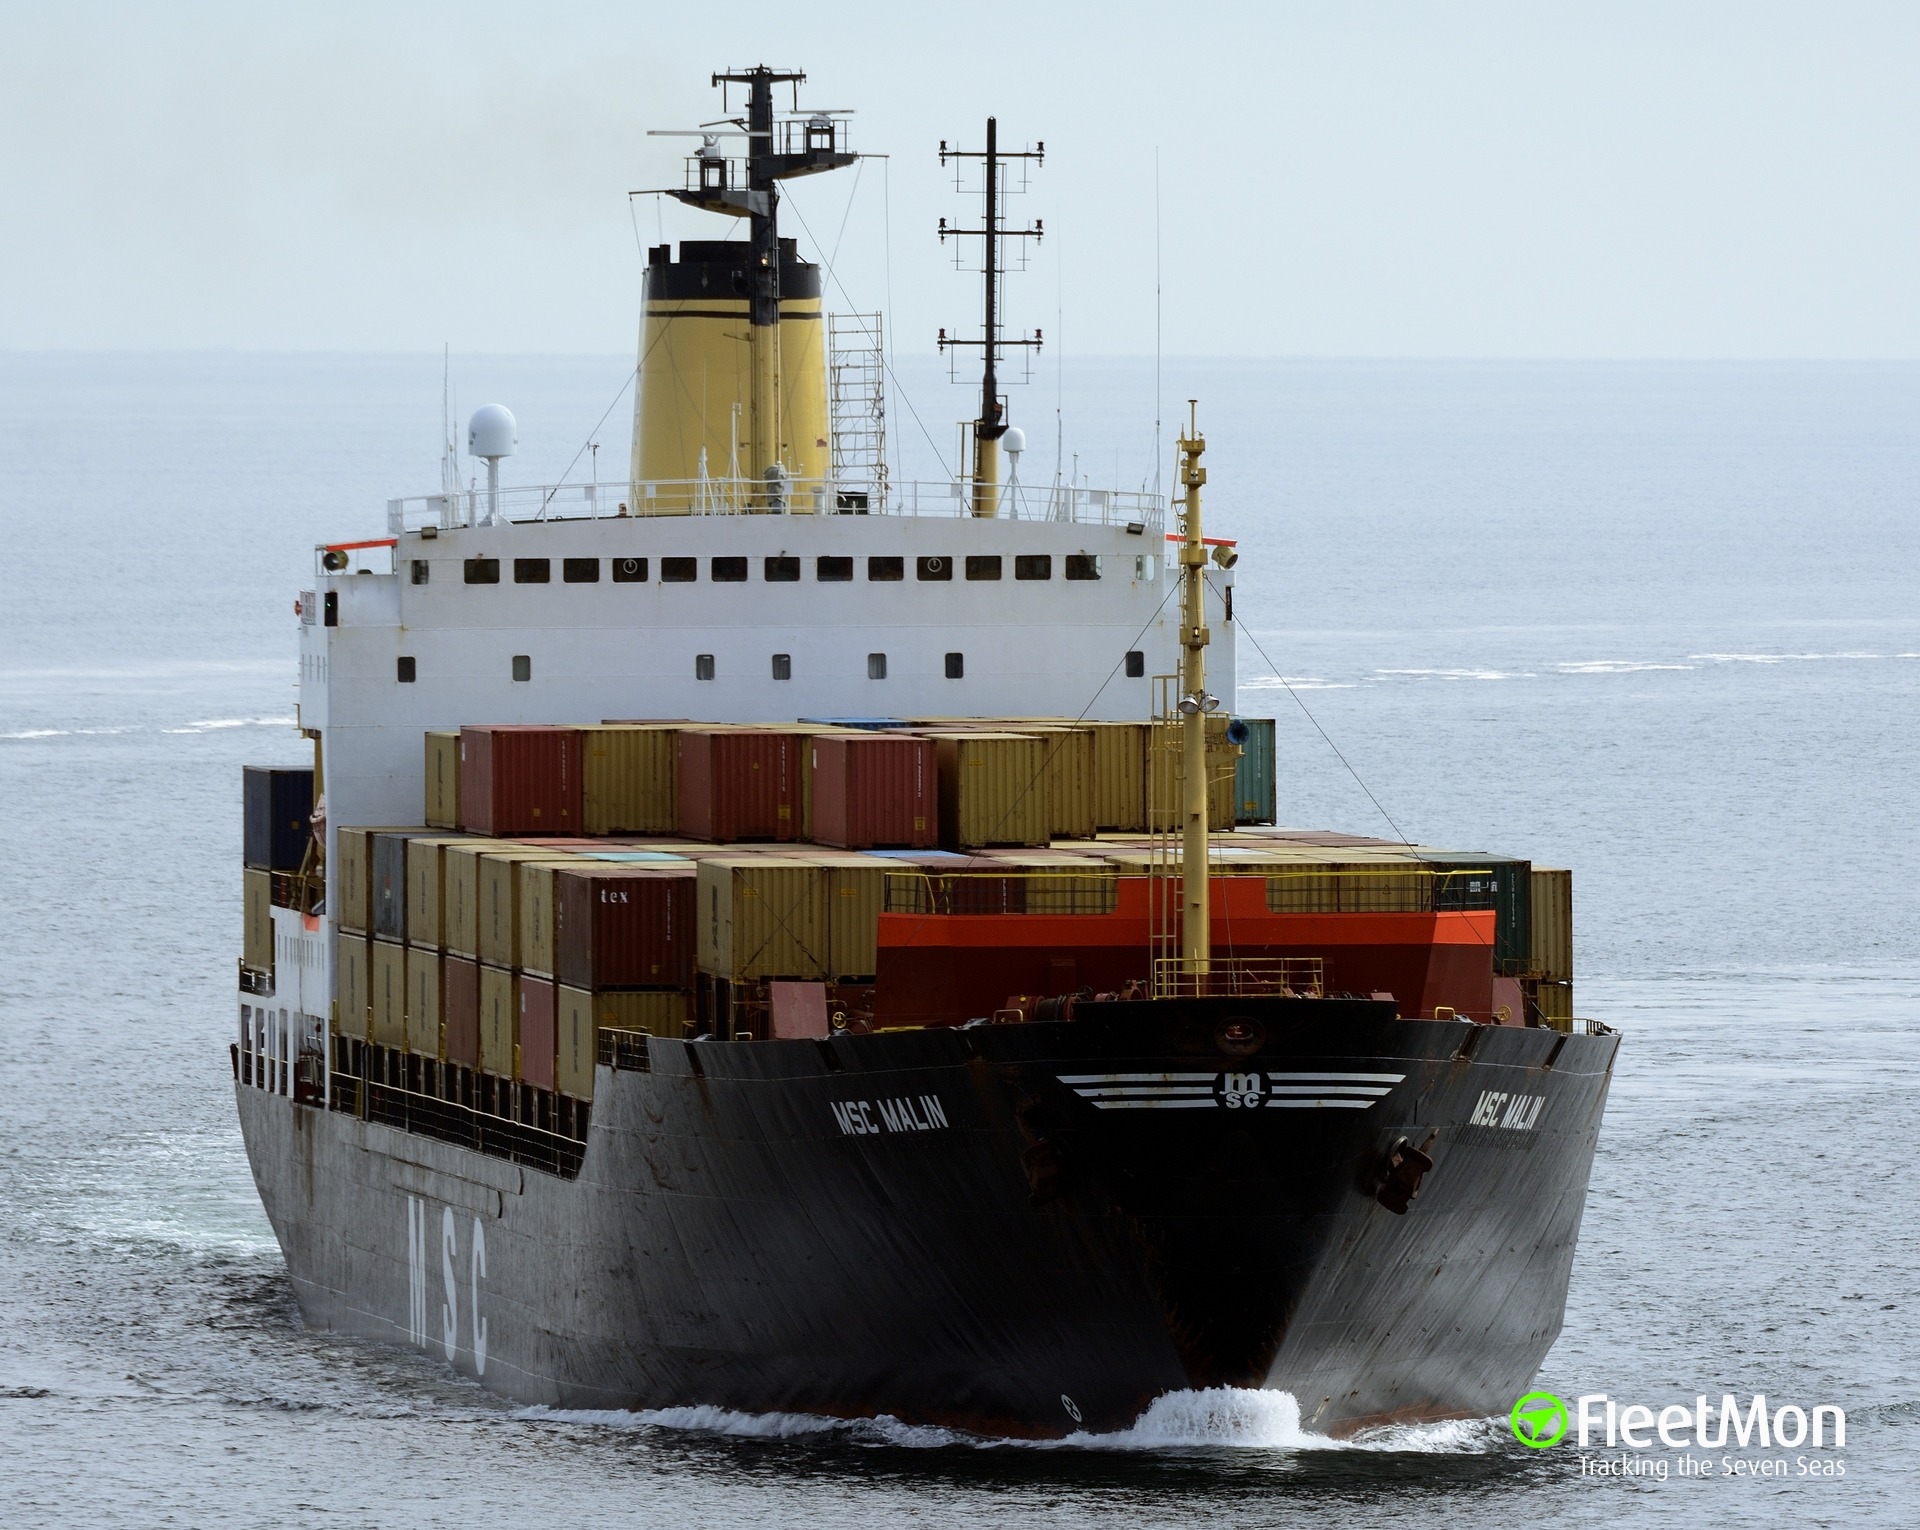 Container ship MSC Malin aground and refloated, Wester Scheldt